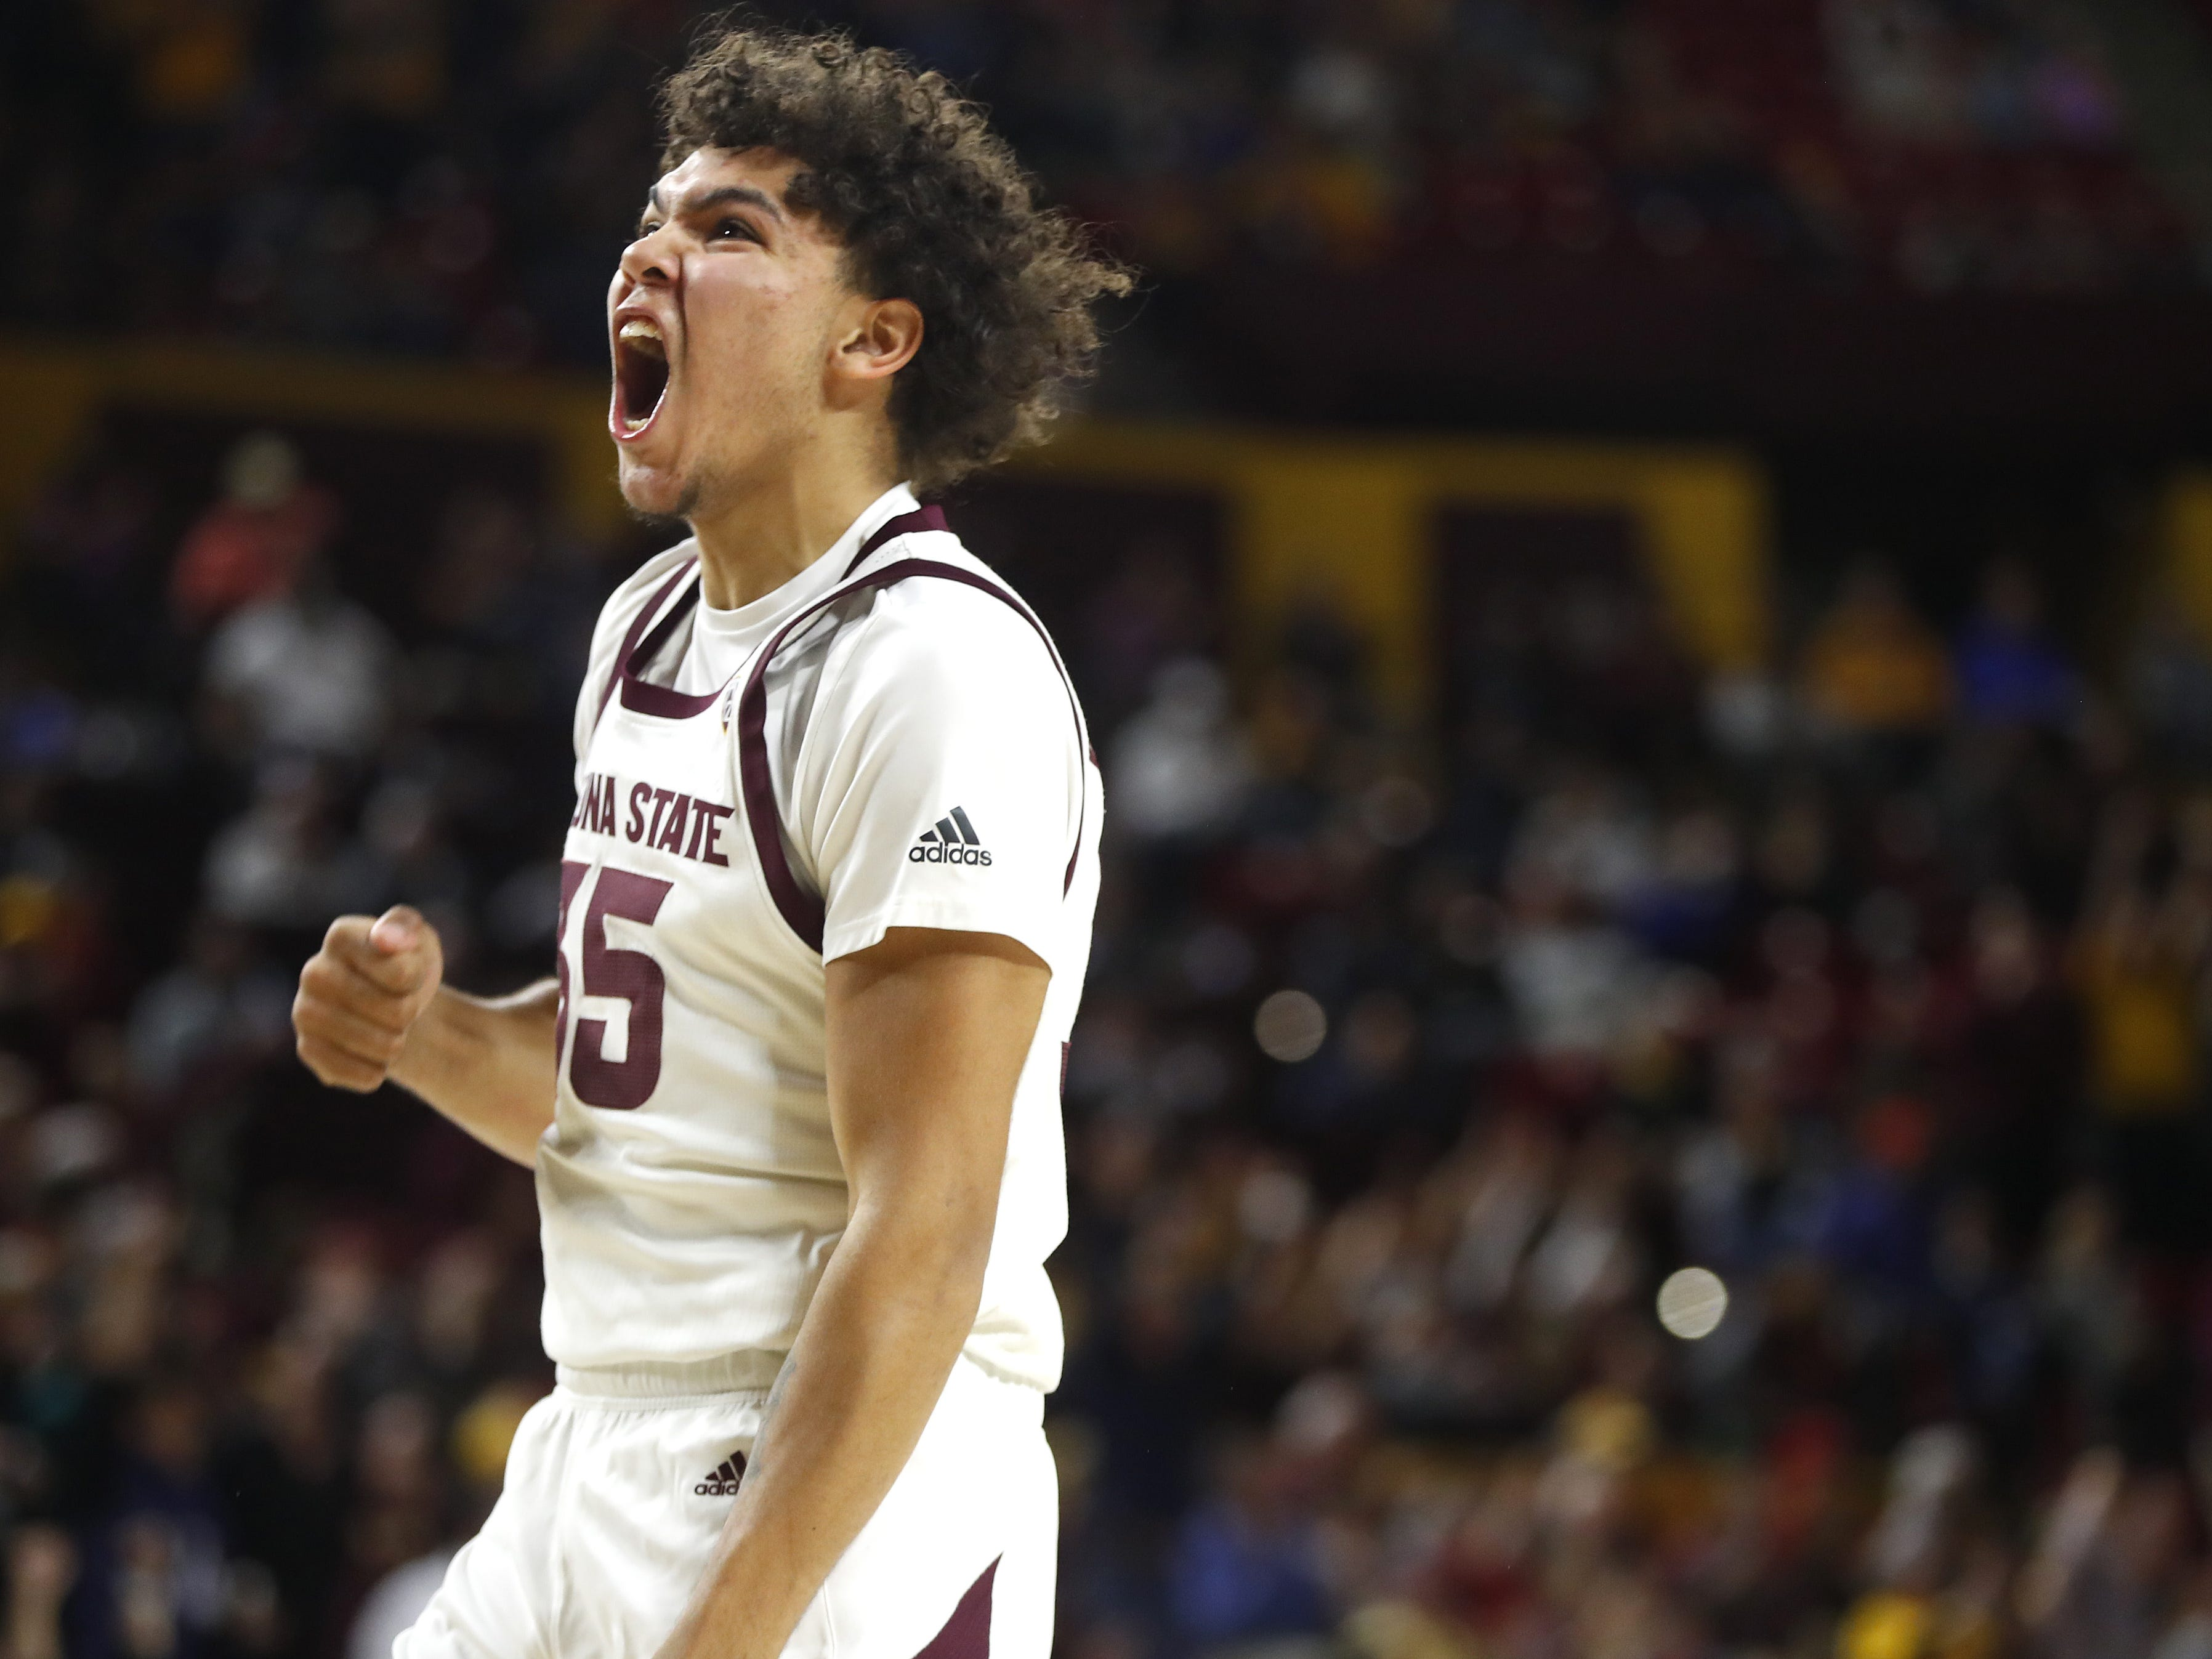 ASU's Taeshon Cherry (35) celebrates after ASU expands its lead during the first half against Colorado at Wells Fargo Arena in Tempe, Ariz. on January 5, 2019.